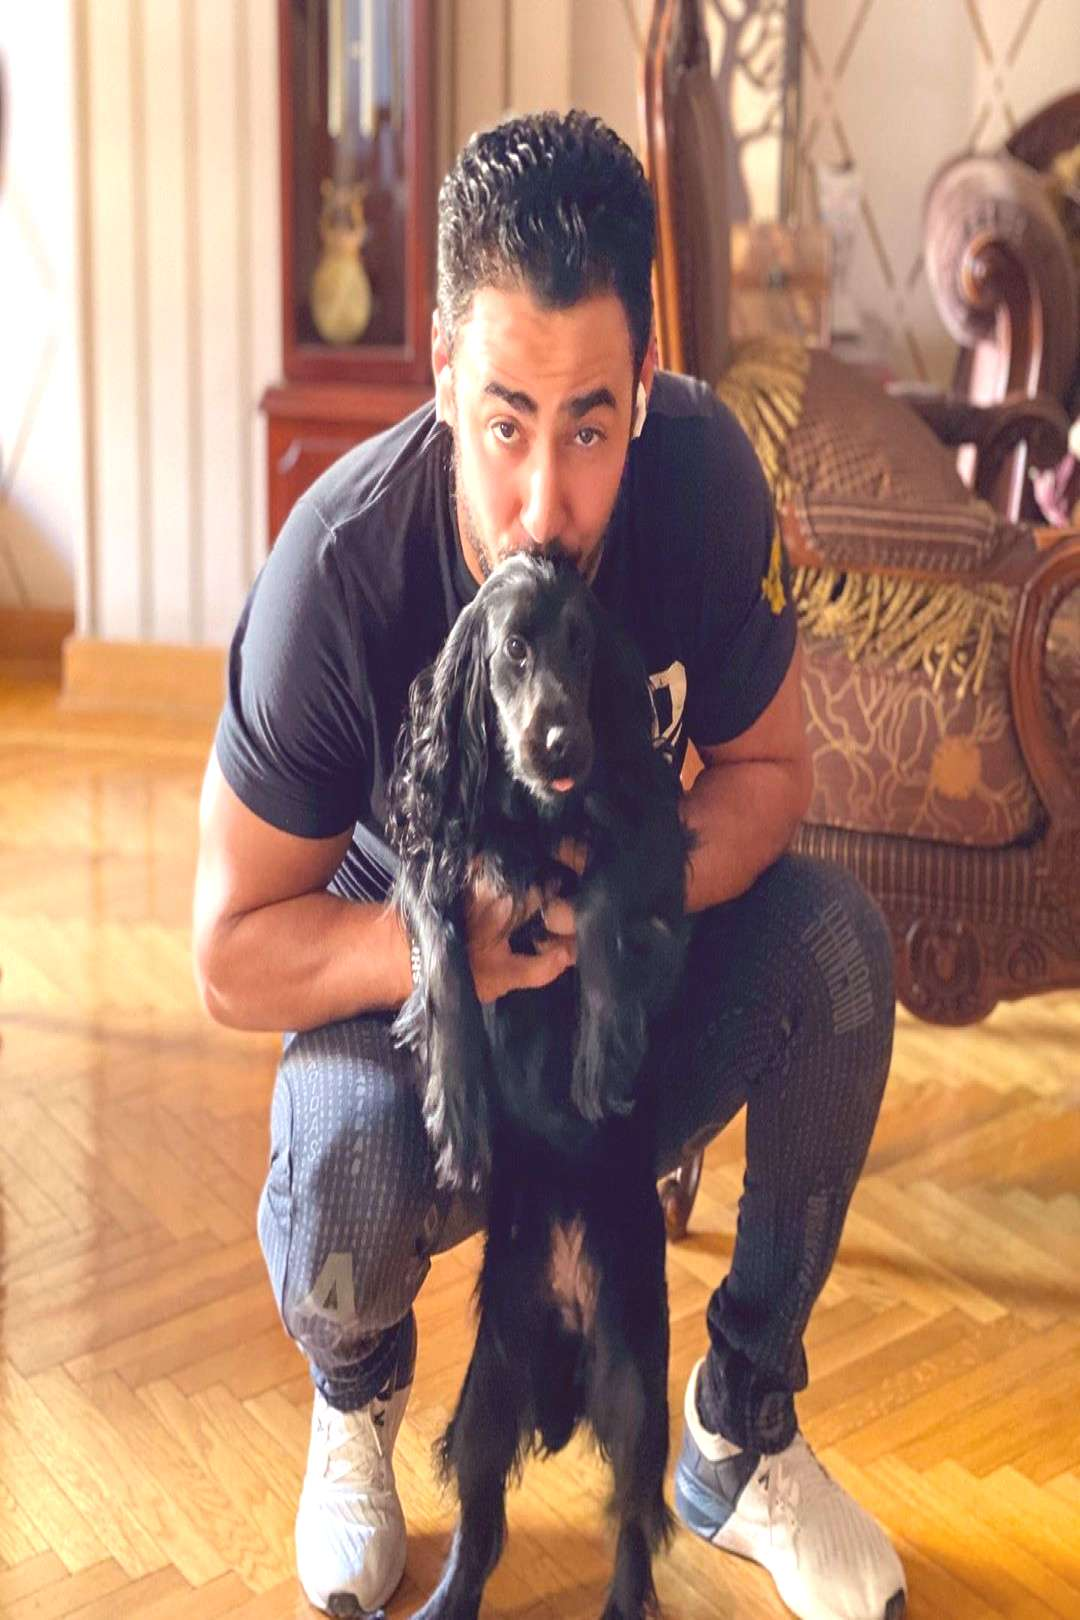 Khaled Khalil on June 02 2020 and 1 person dog and indoor